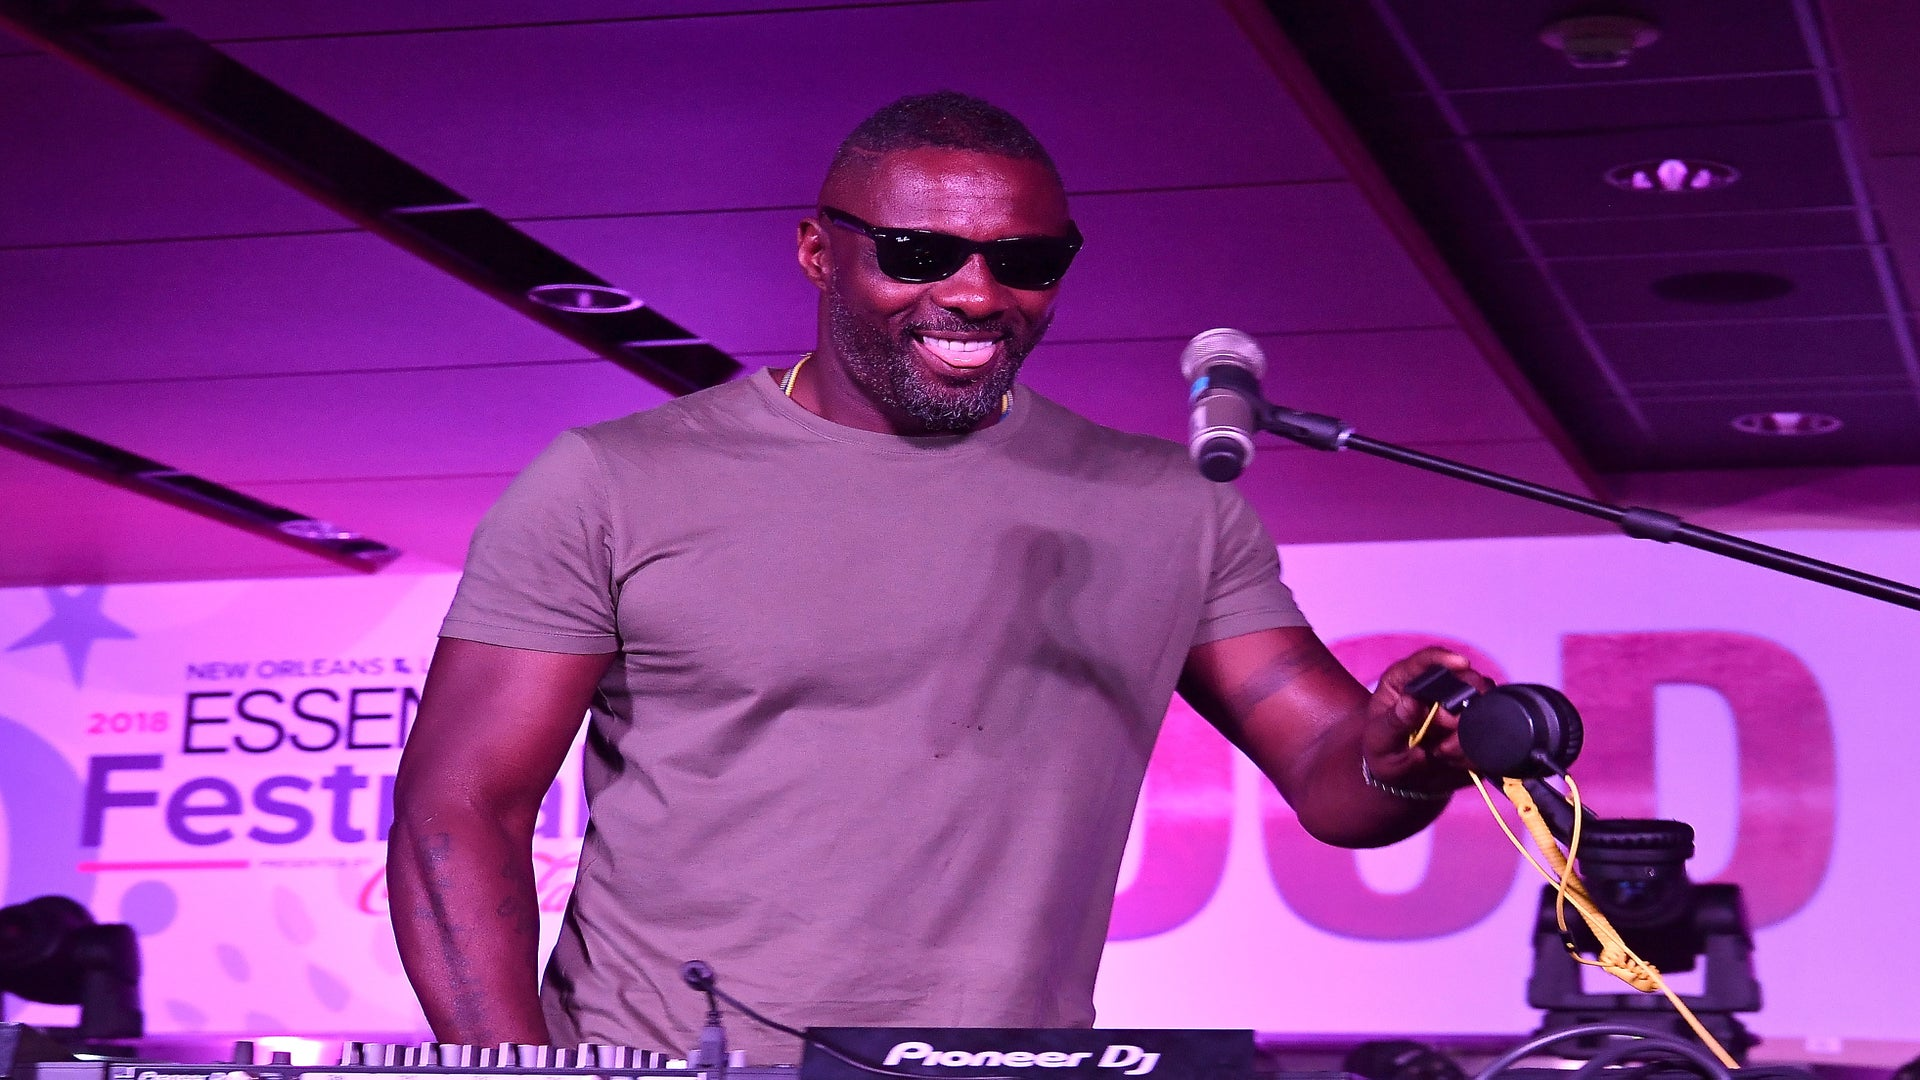 Idris Elba Brings Good Vibes To The Stage For His 2018 ESSENCE Festival Debut